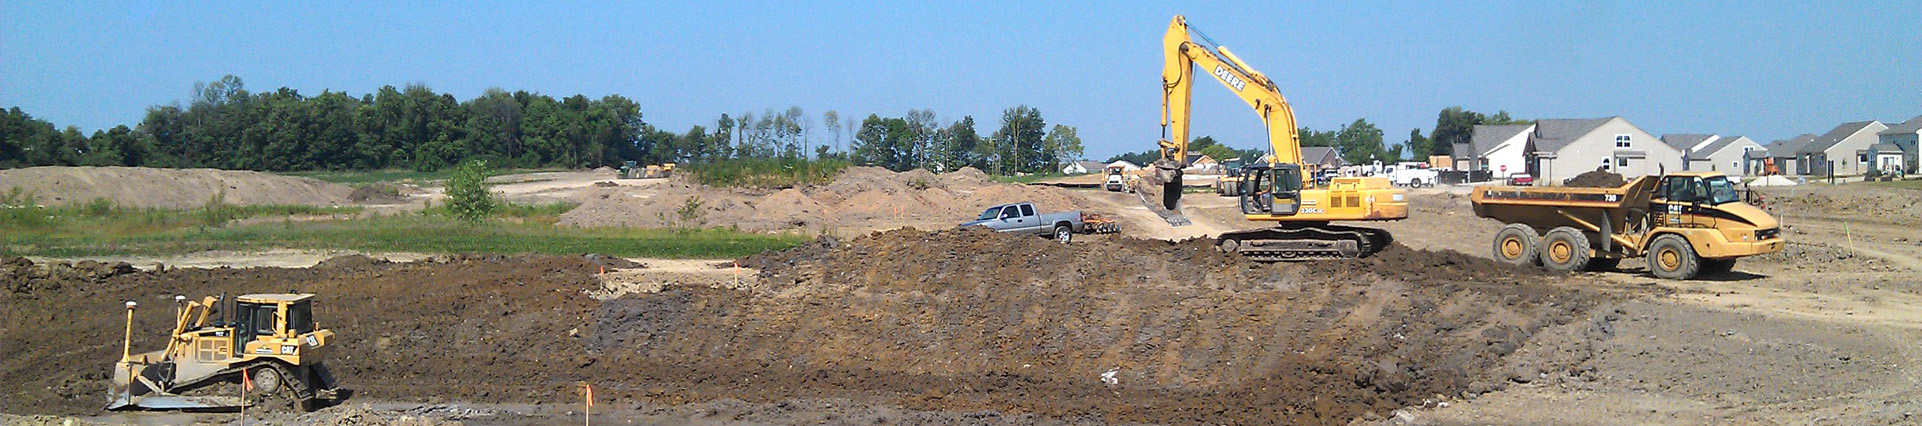 D&M Excavating, Inc., in the Dayton Ohio area